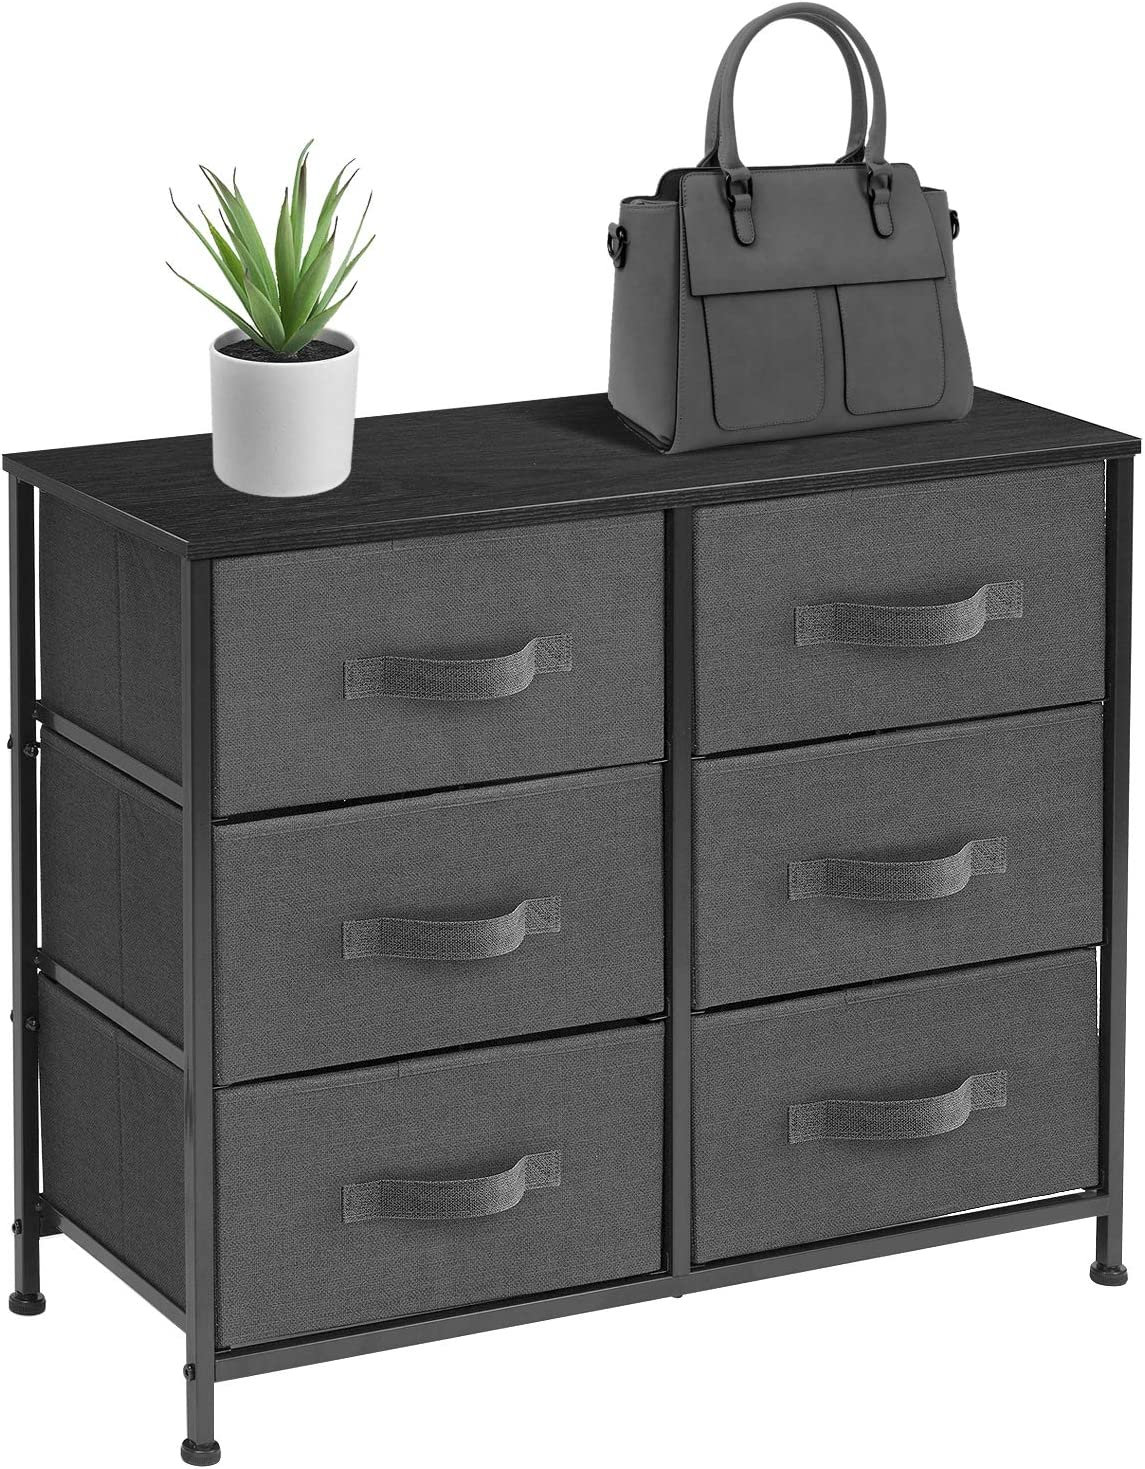 Sorbus Dresser with 6 Drawers - Furniture Storage Tower Unit for Bedroom, Hallway, Closet, Office Organization - Steel Frame, Wood Top, Easy Pull Fabric Bins (6 Drawer - Black)